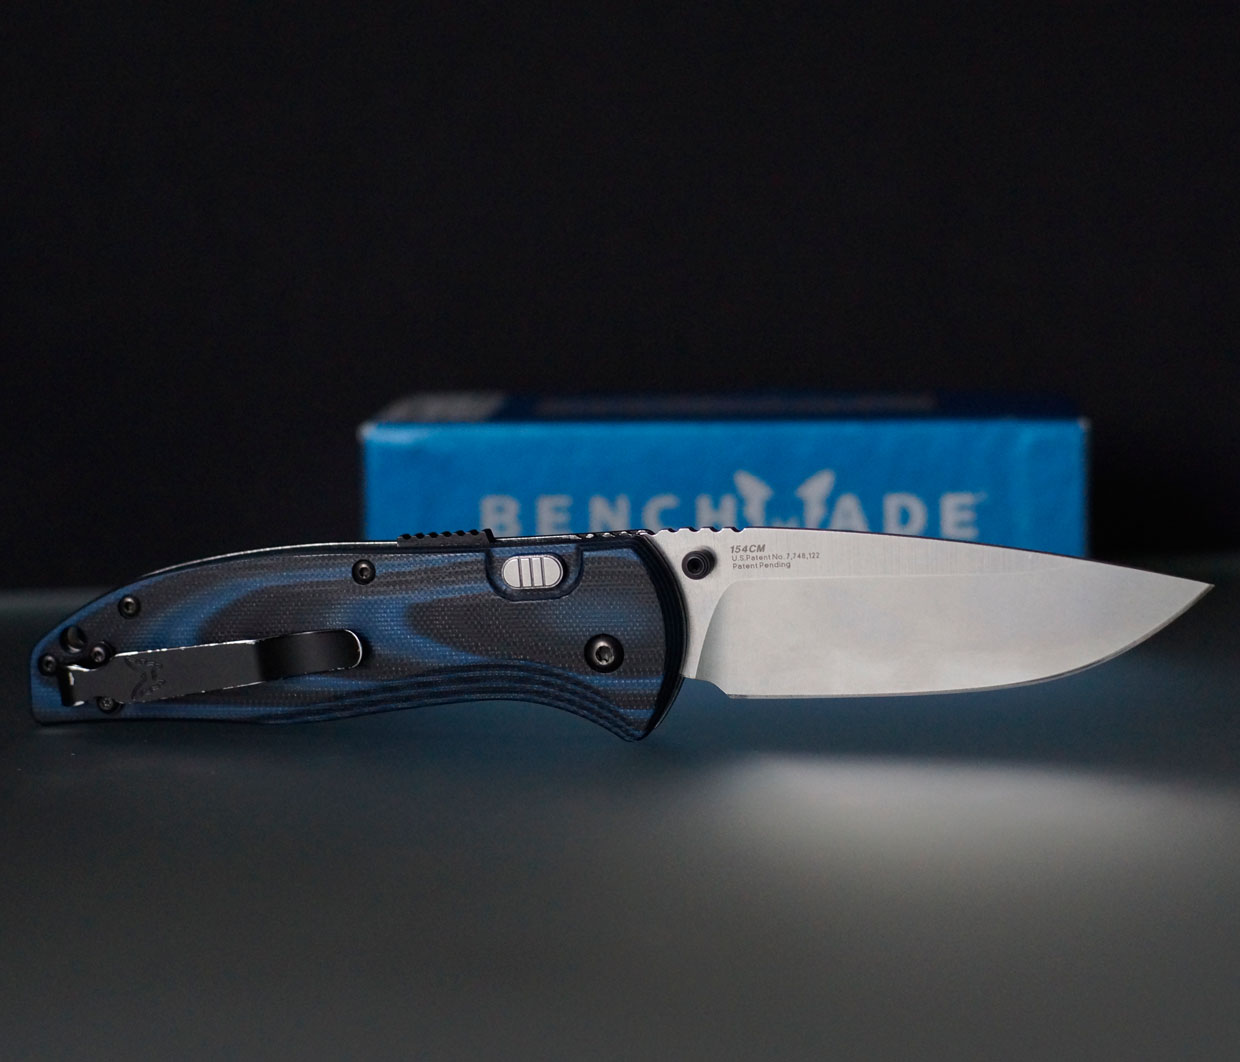 Benchmade 665 APB Assist бу